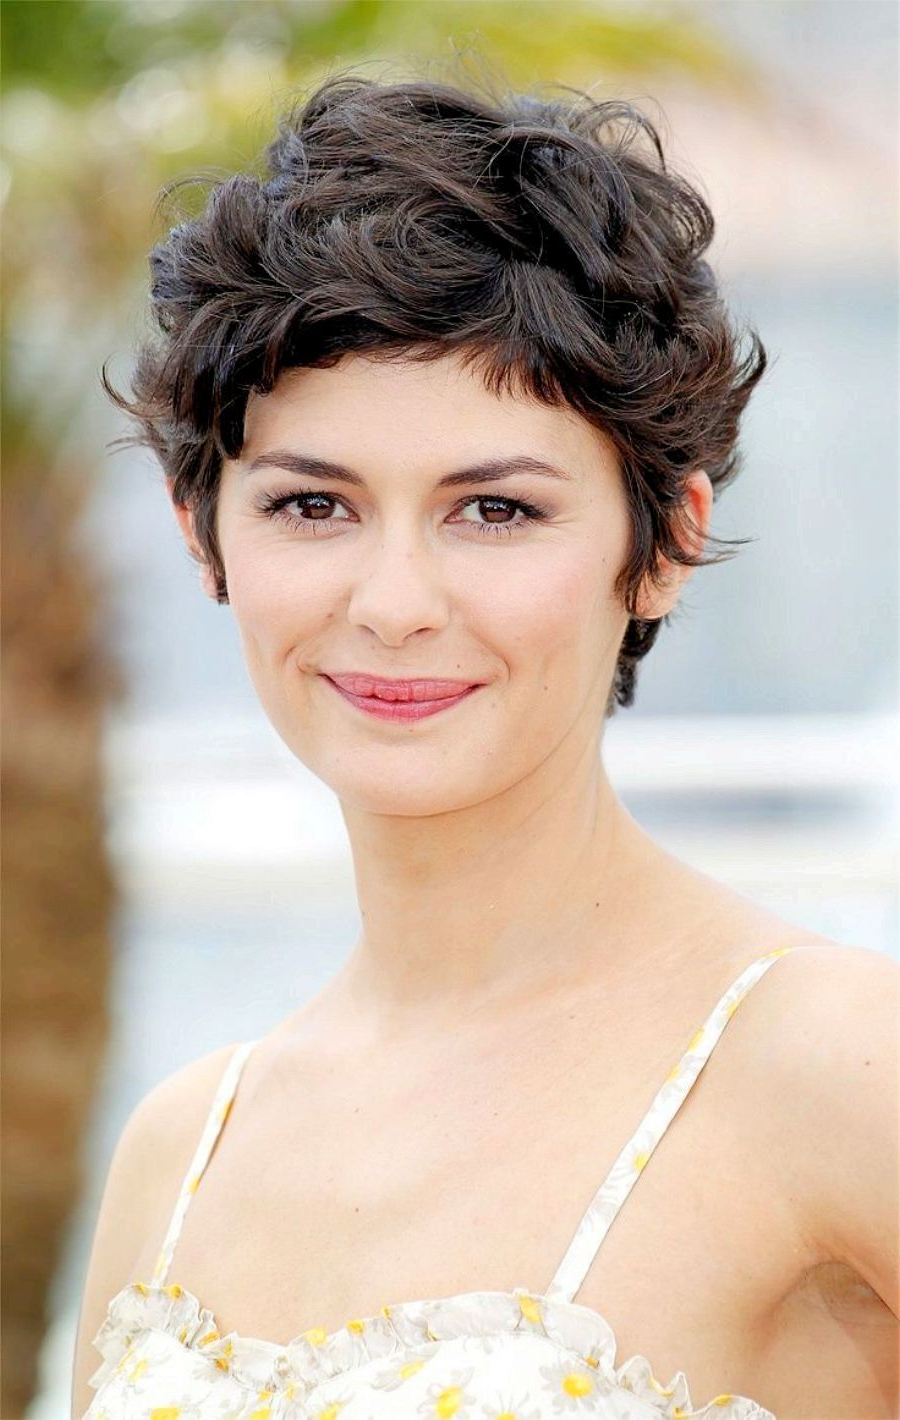 Curly Pixie Haircut   Hairstyles   Pinterest   Hair, Curly Hair Intended For Short Hairstyles For Ladies With Curly Hair (View 14 of 25)